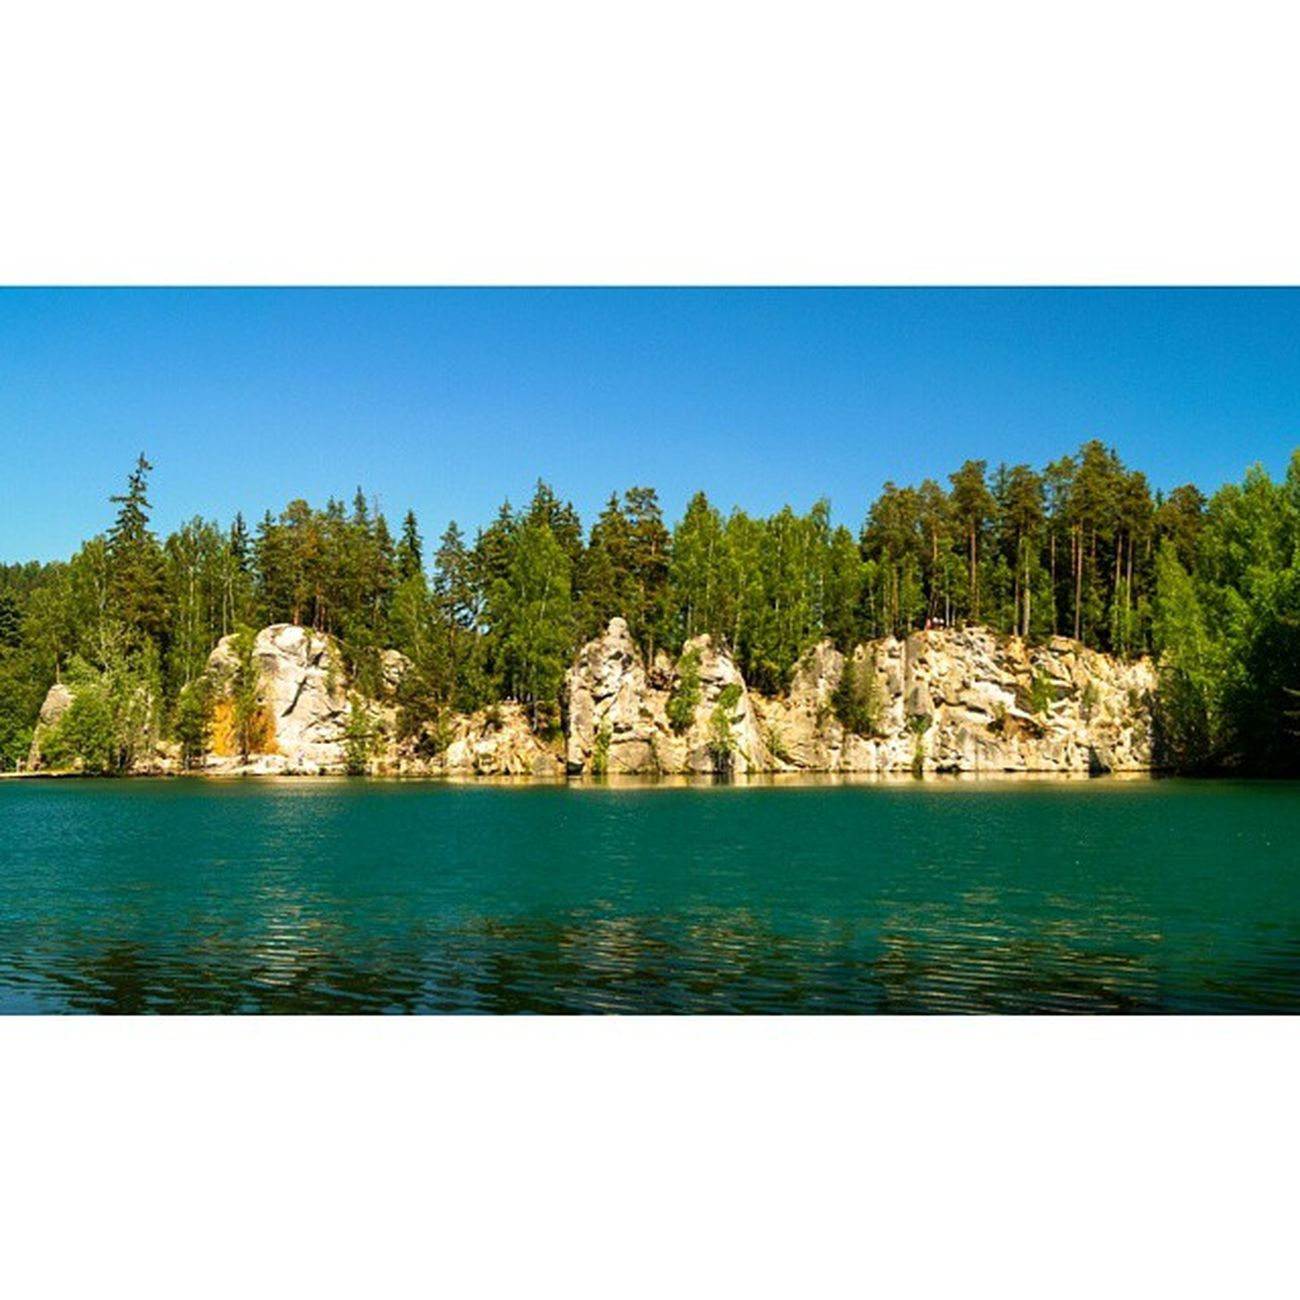 Love it!❤❤❤ Teplicenadmetuji Adršpach Skały Rocks Skalne Miasto Czech Republic Czechy Nature Lake Landscape Beautiful Day Weather Sunny Trip Travel With Lovely Boyfriend Mountains Weekend Free Time piękniewidokifantasticviewholidaylikeforlike